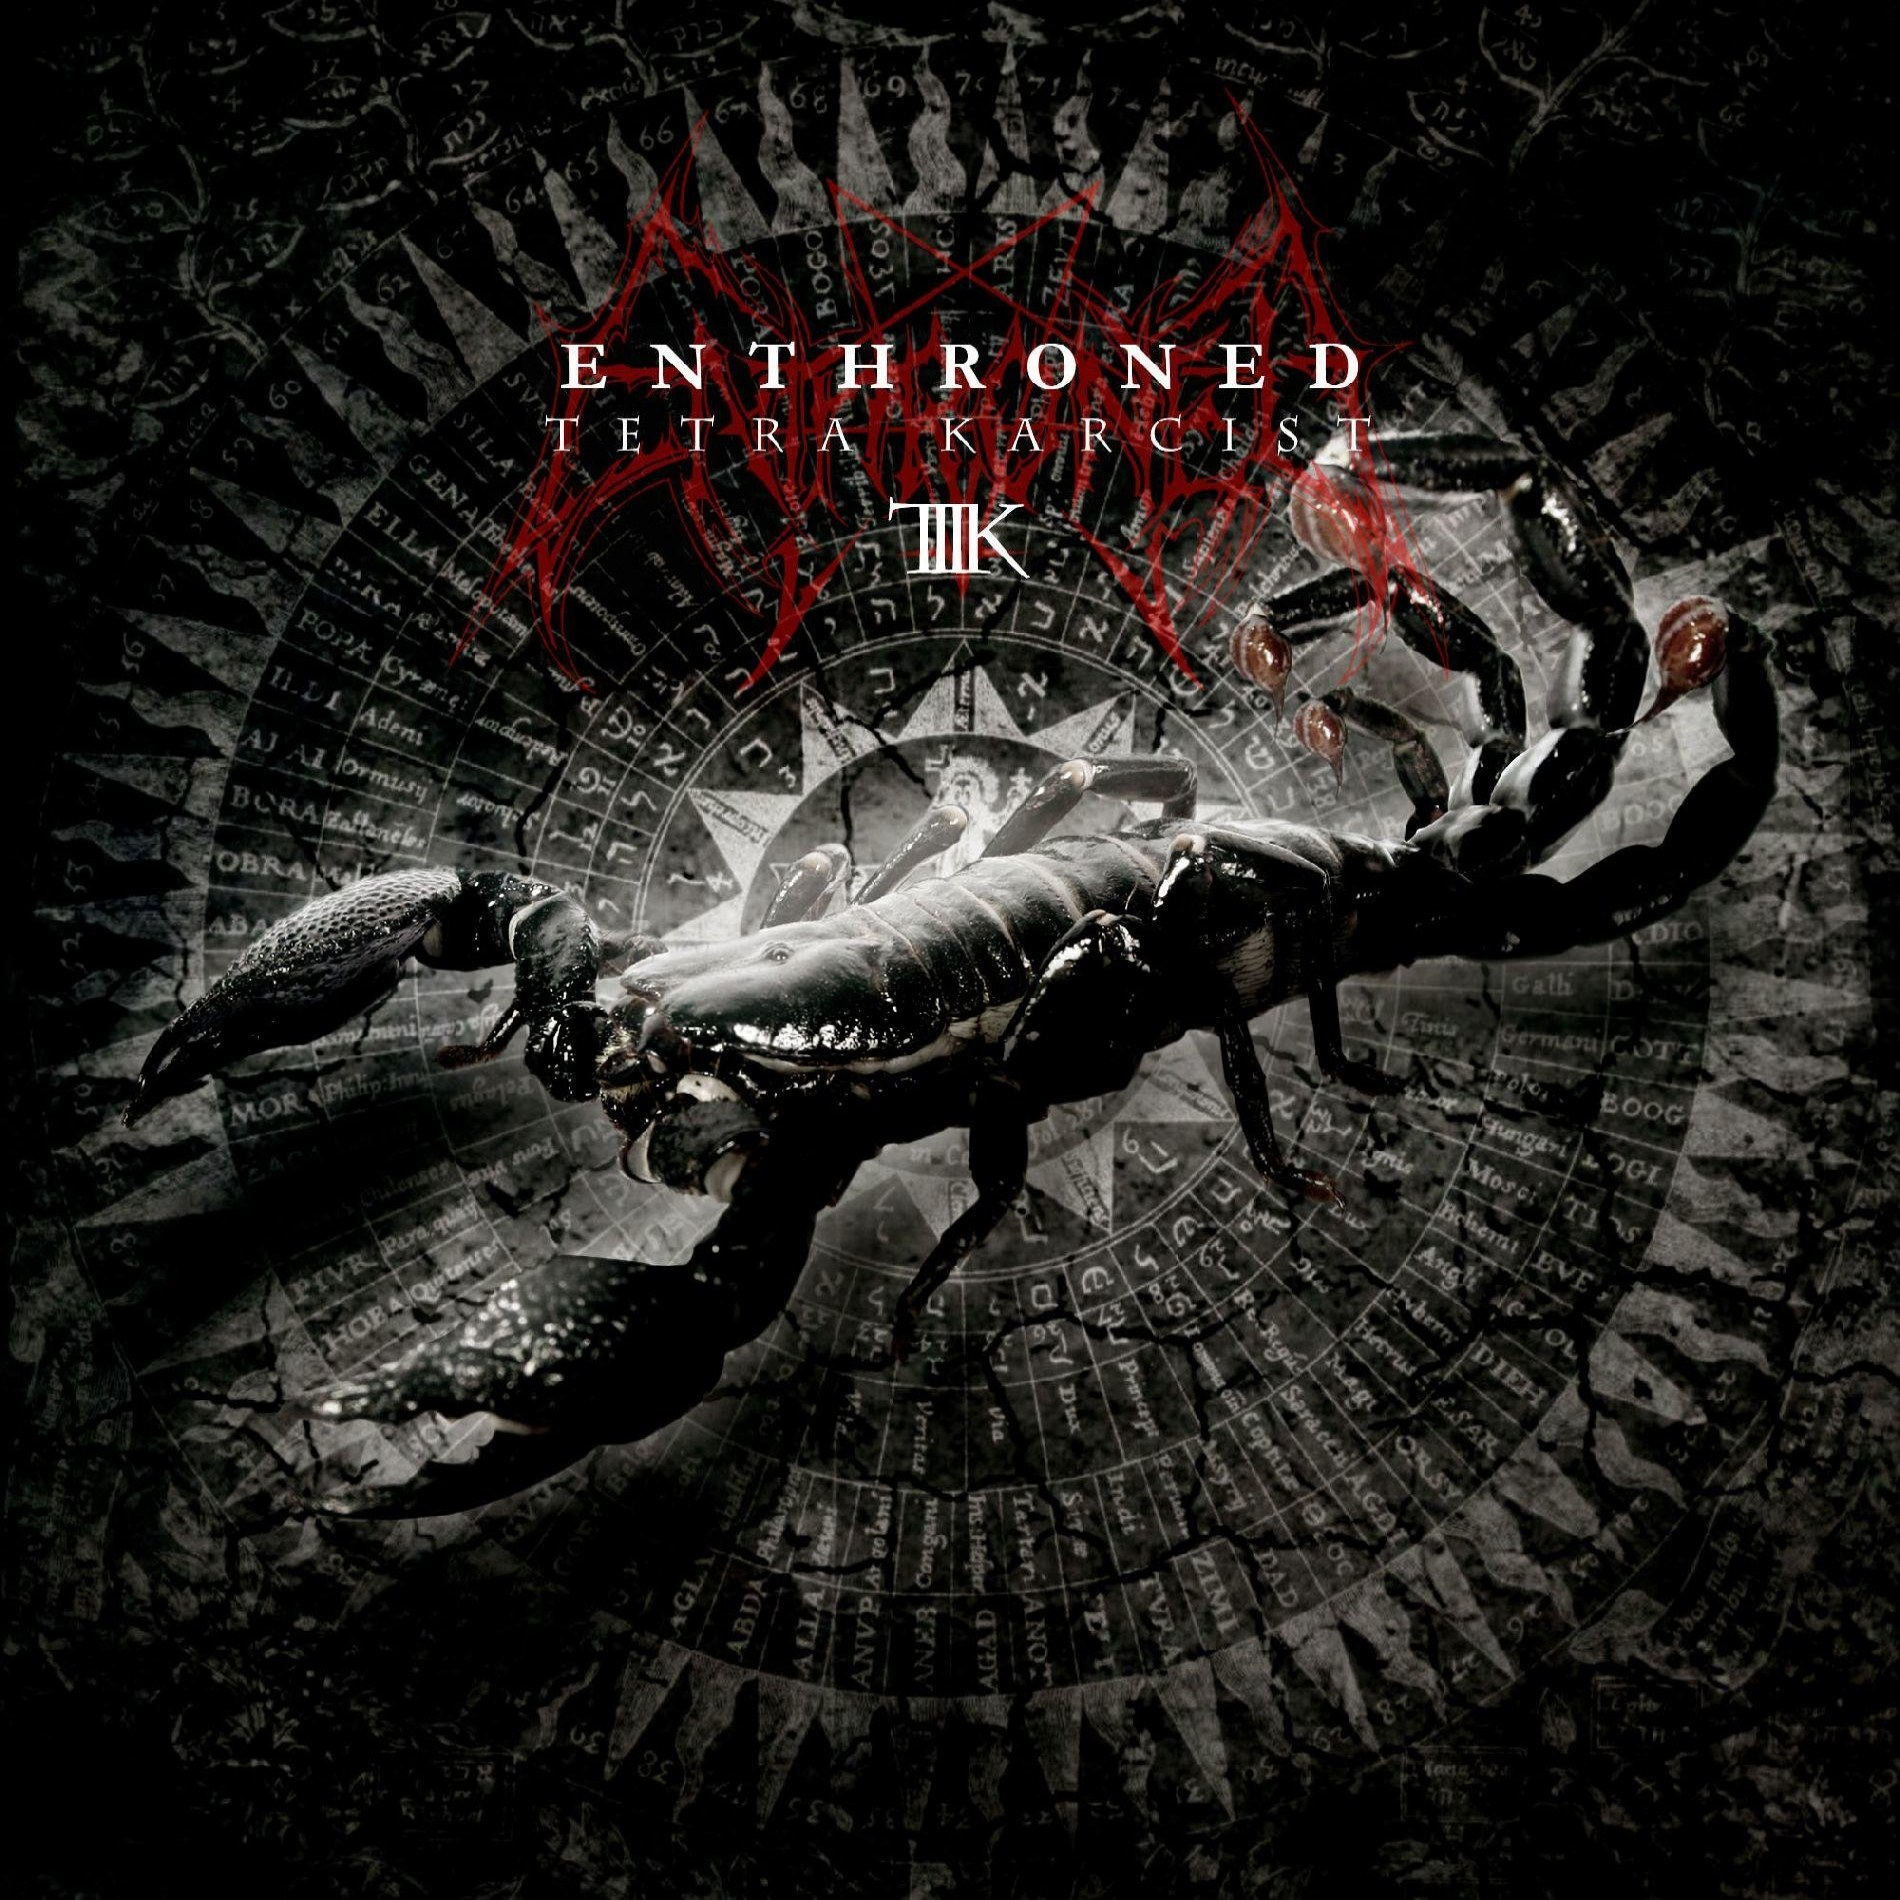 Review for Enthroned - Tetra Karcist